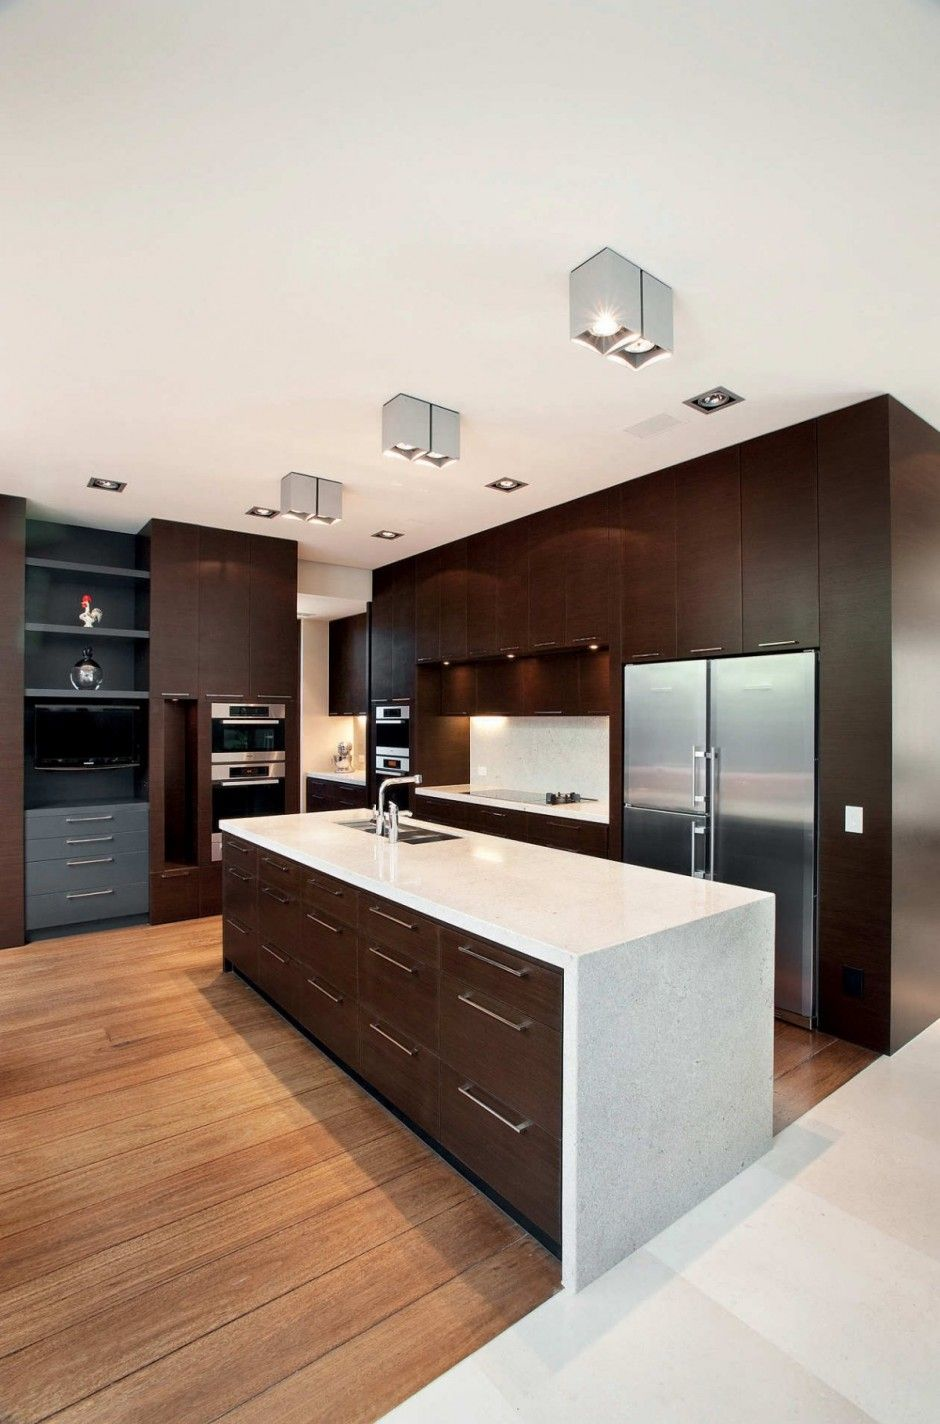 Good Modern Kitchen With Dark Cabinets And White Countertop   Hunter House By Darren  Carnell Architects Good Looking